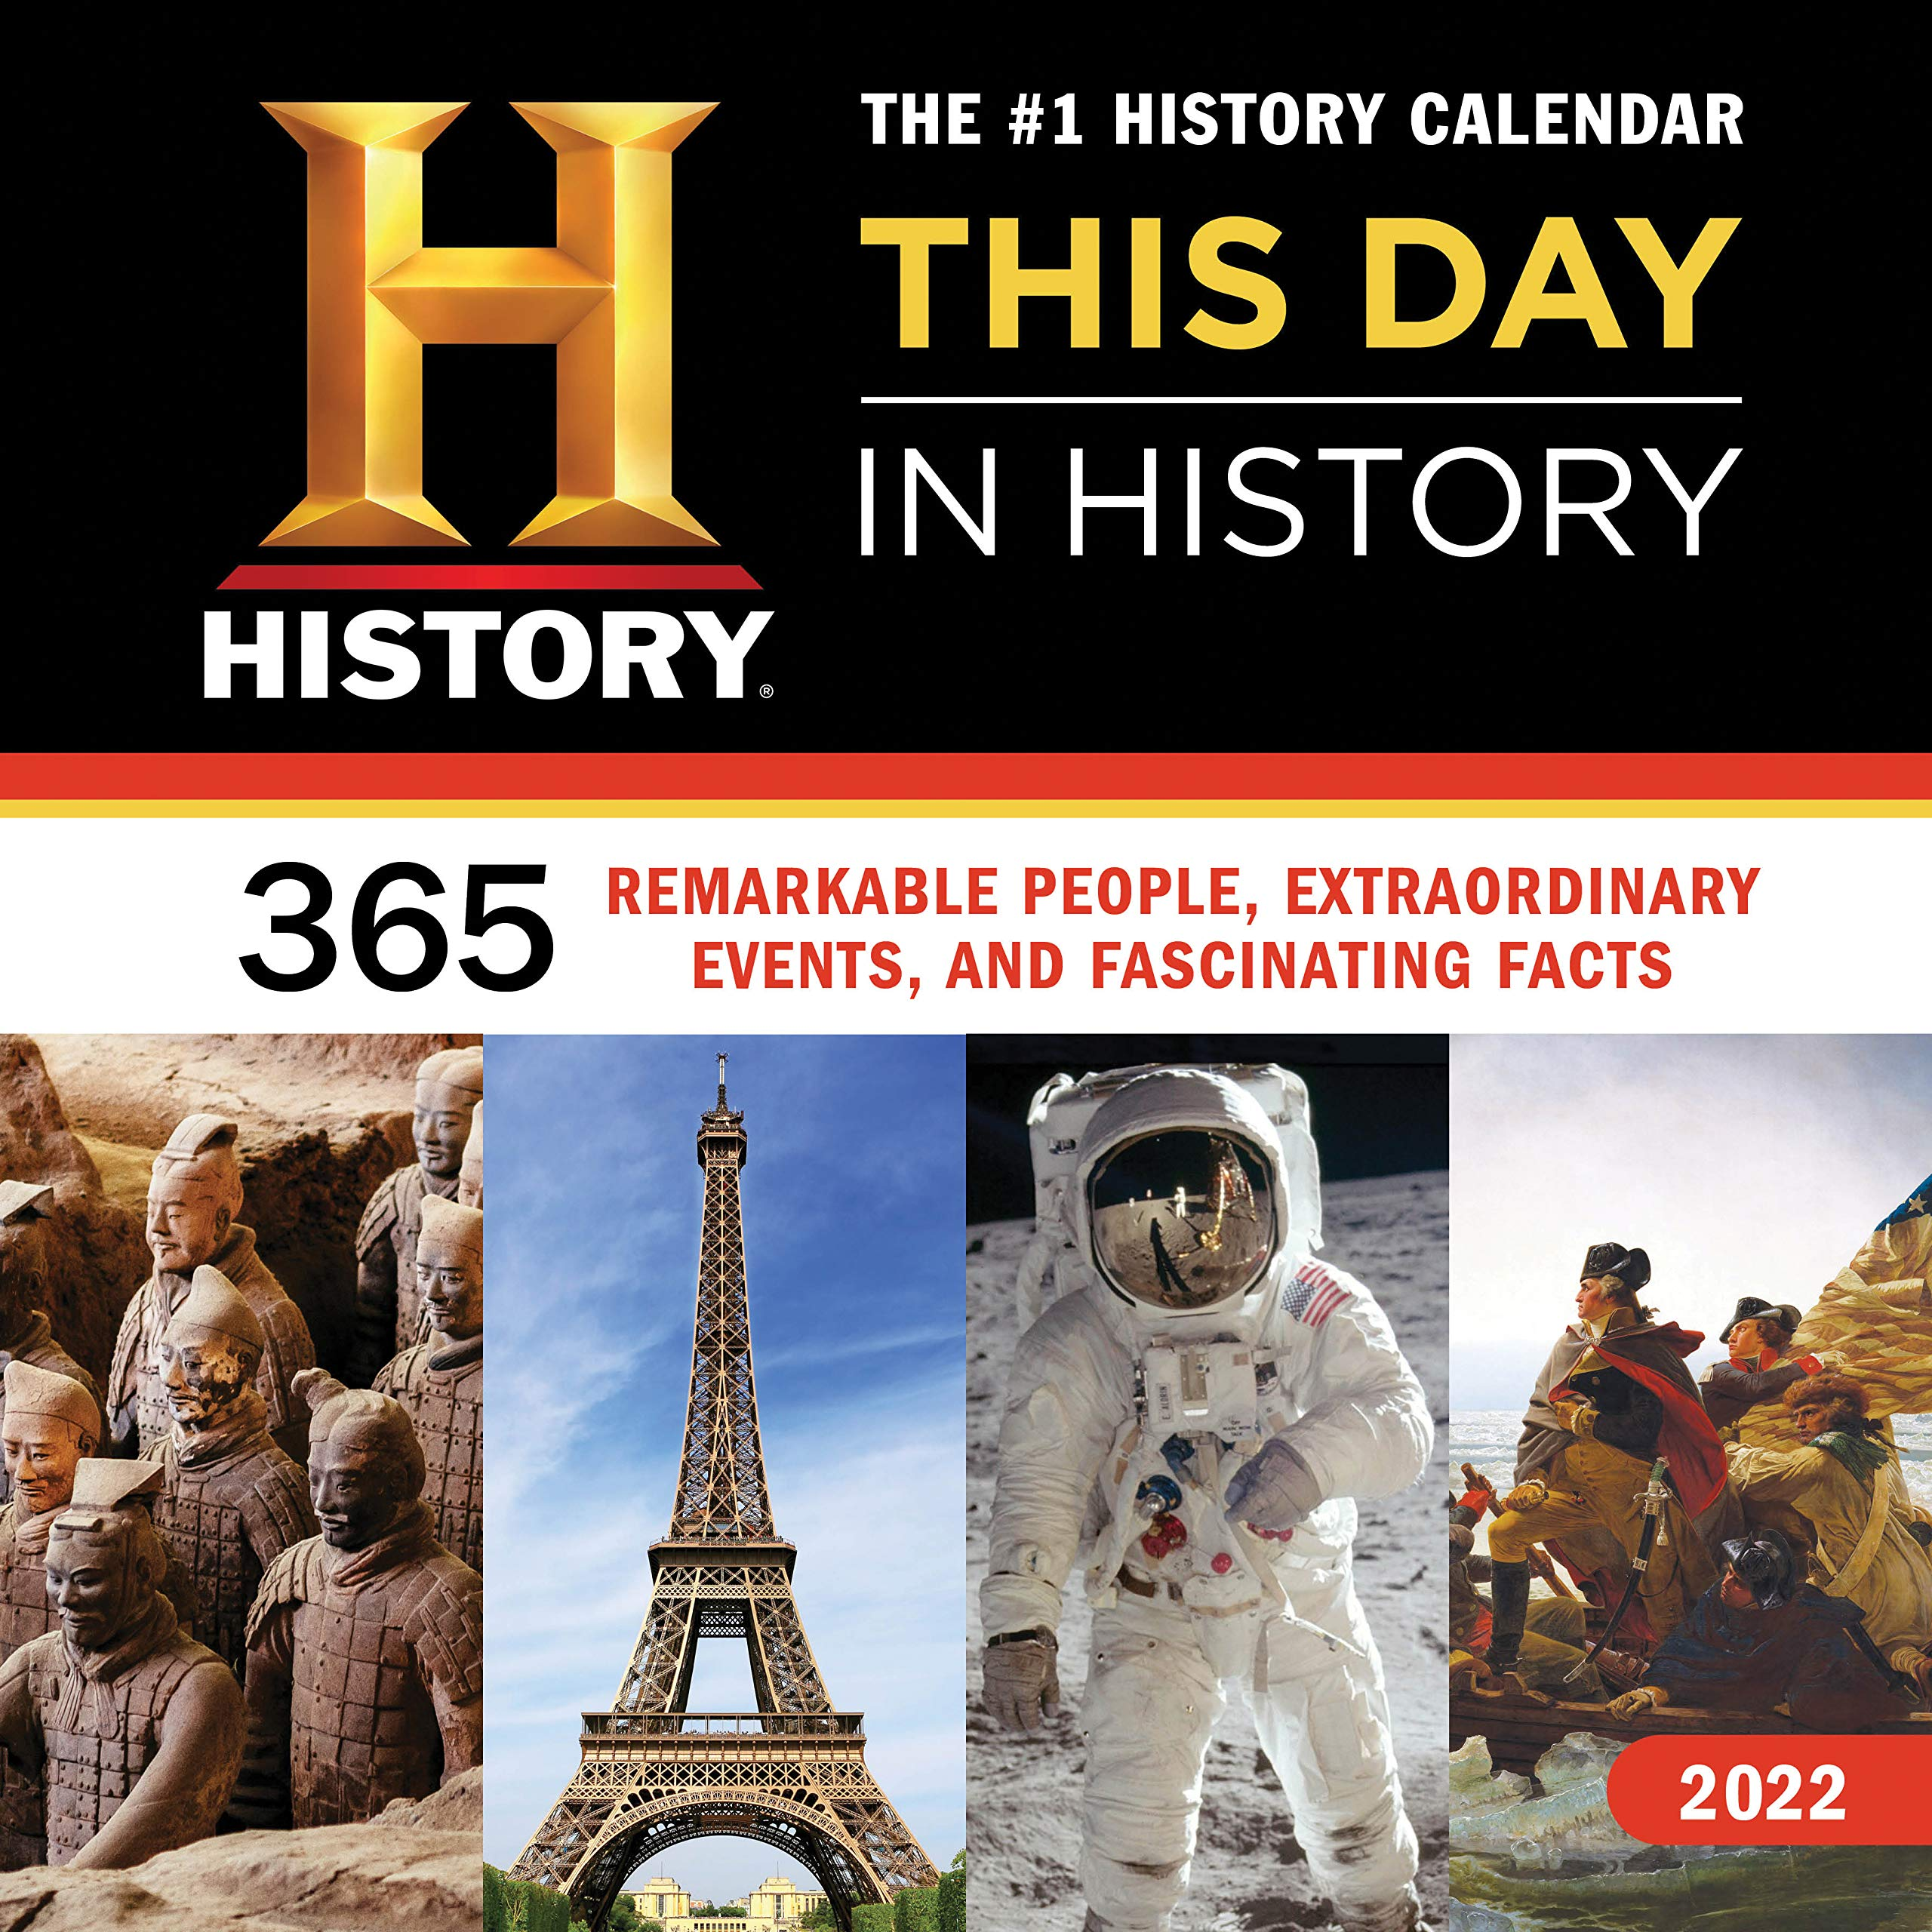 2022 Events Calendar.Buy 2022 History Channel This Day In History Wall Calendar 365 Remarkable People Extraordinary Events And Fascinating Facts Book Online At Low Prices In India 2022 History Channel This Day In